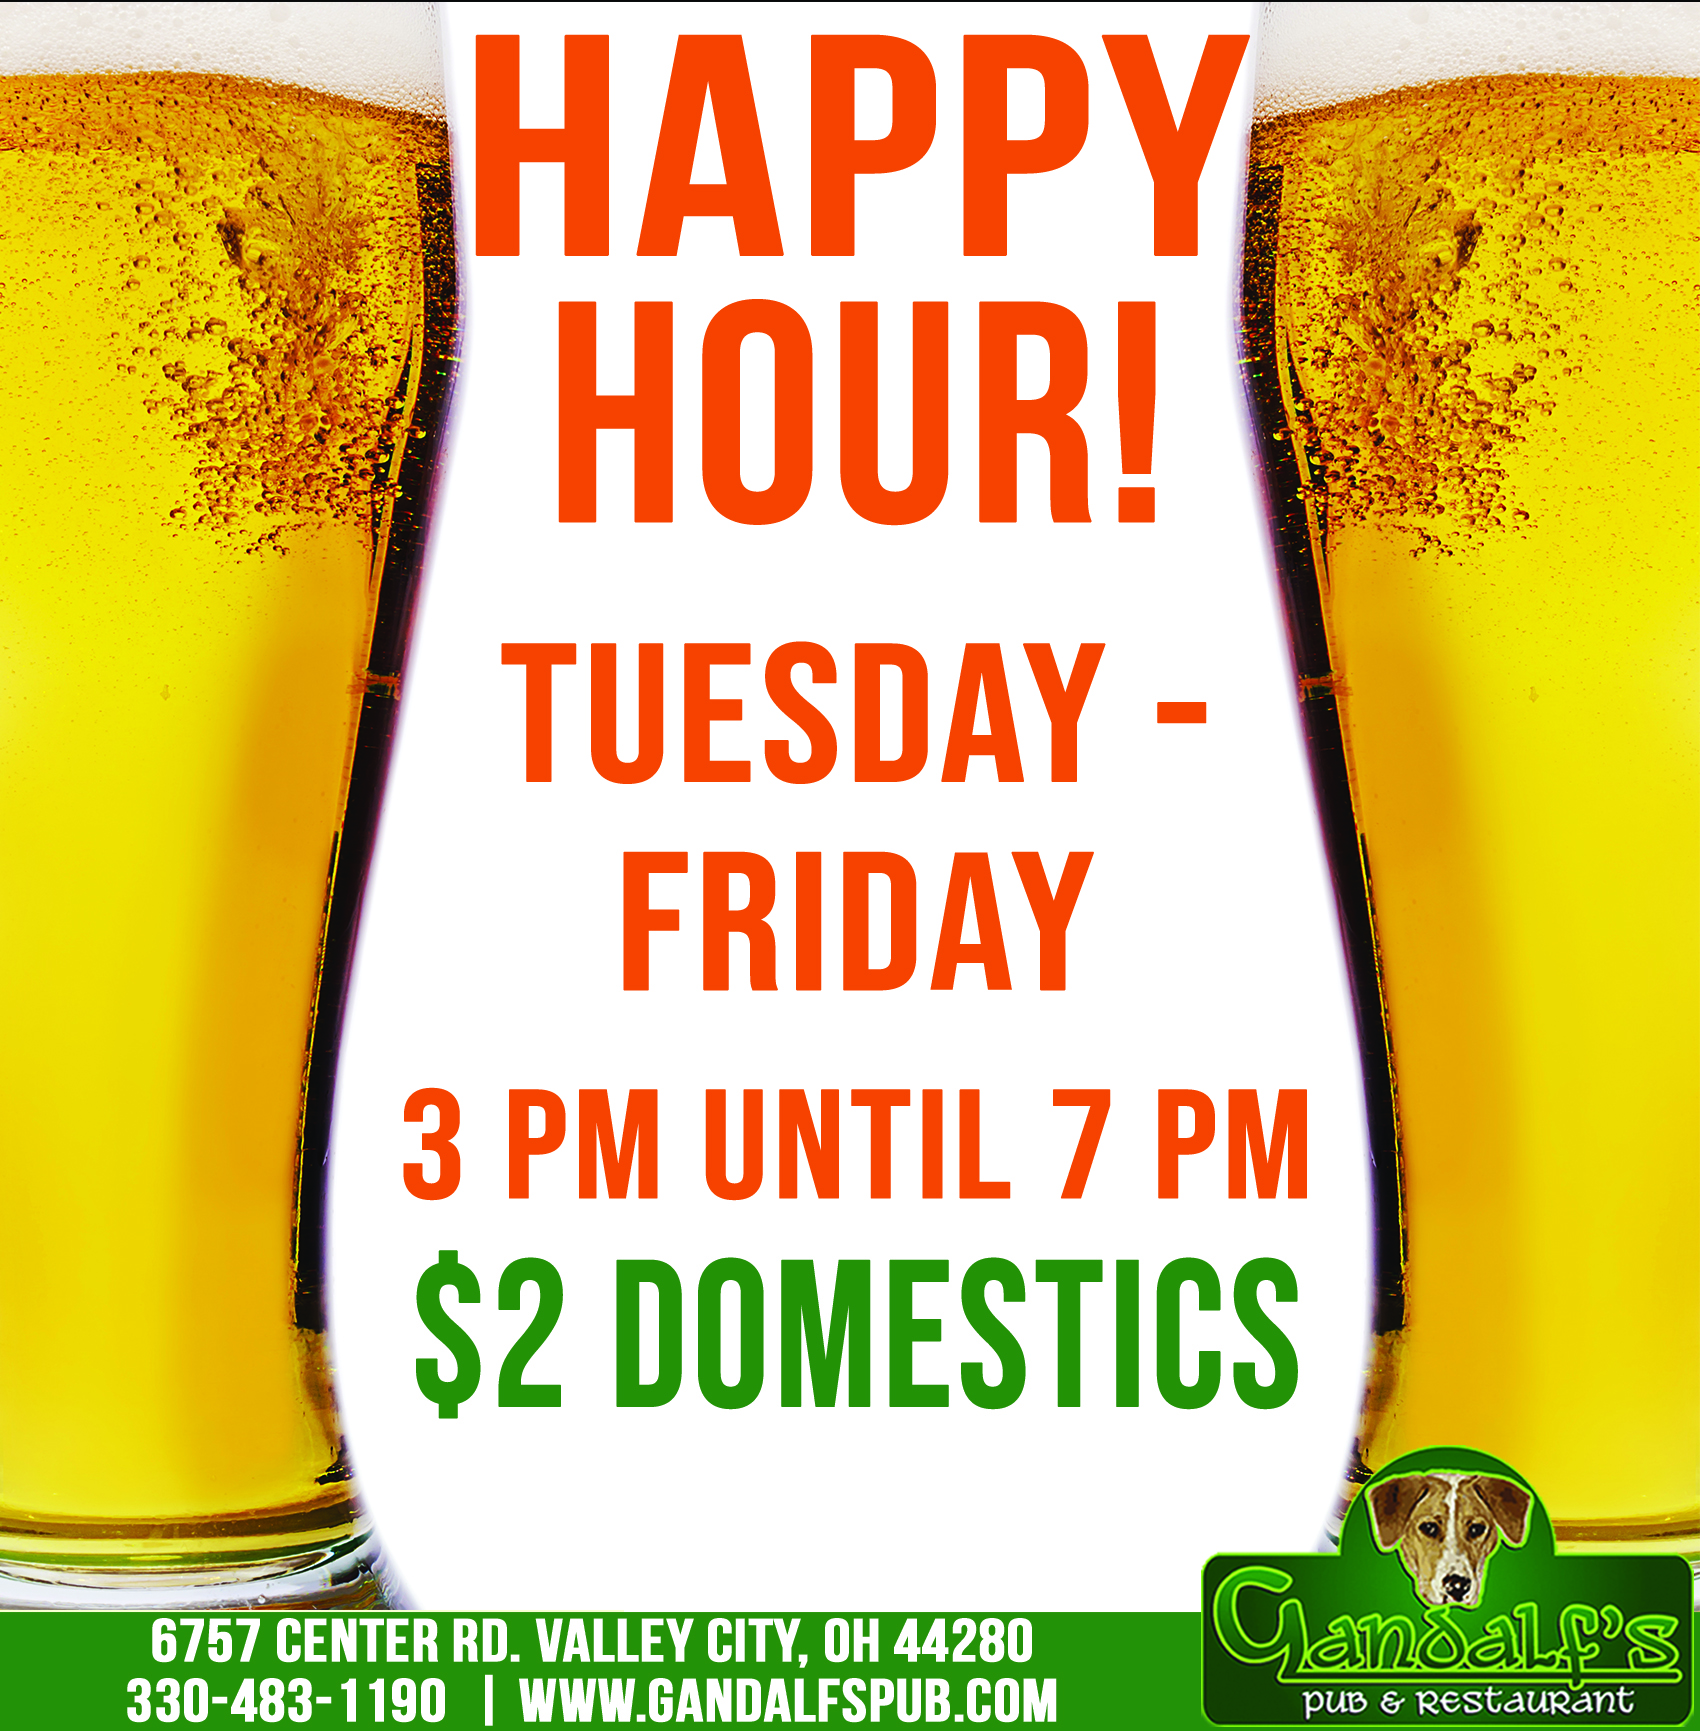 Happy hour! Tuesday-Friday 3pm until 7 pm $2 domestics 6757 center rd. valley city oh 44280 330-483-1190